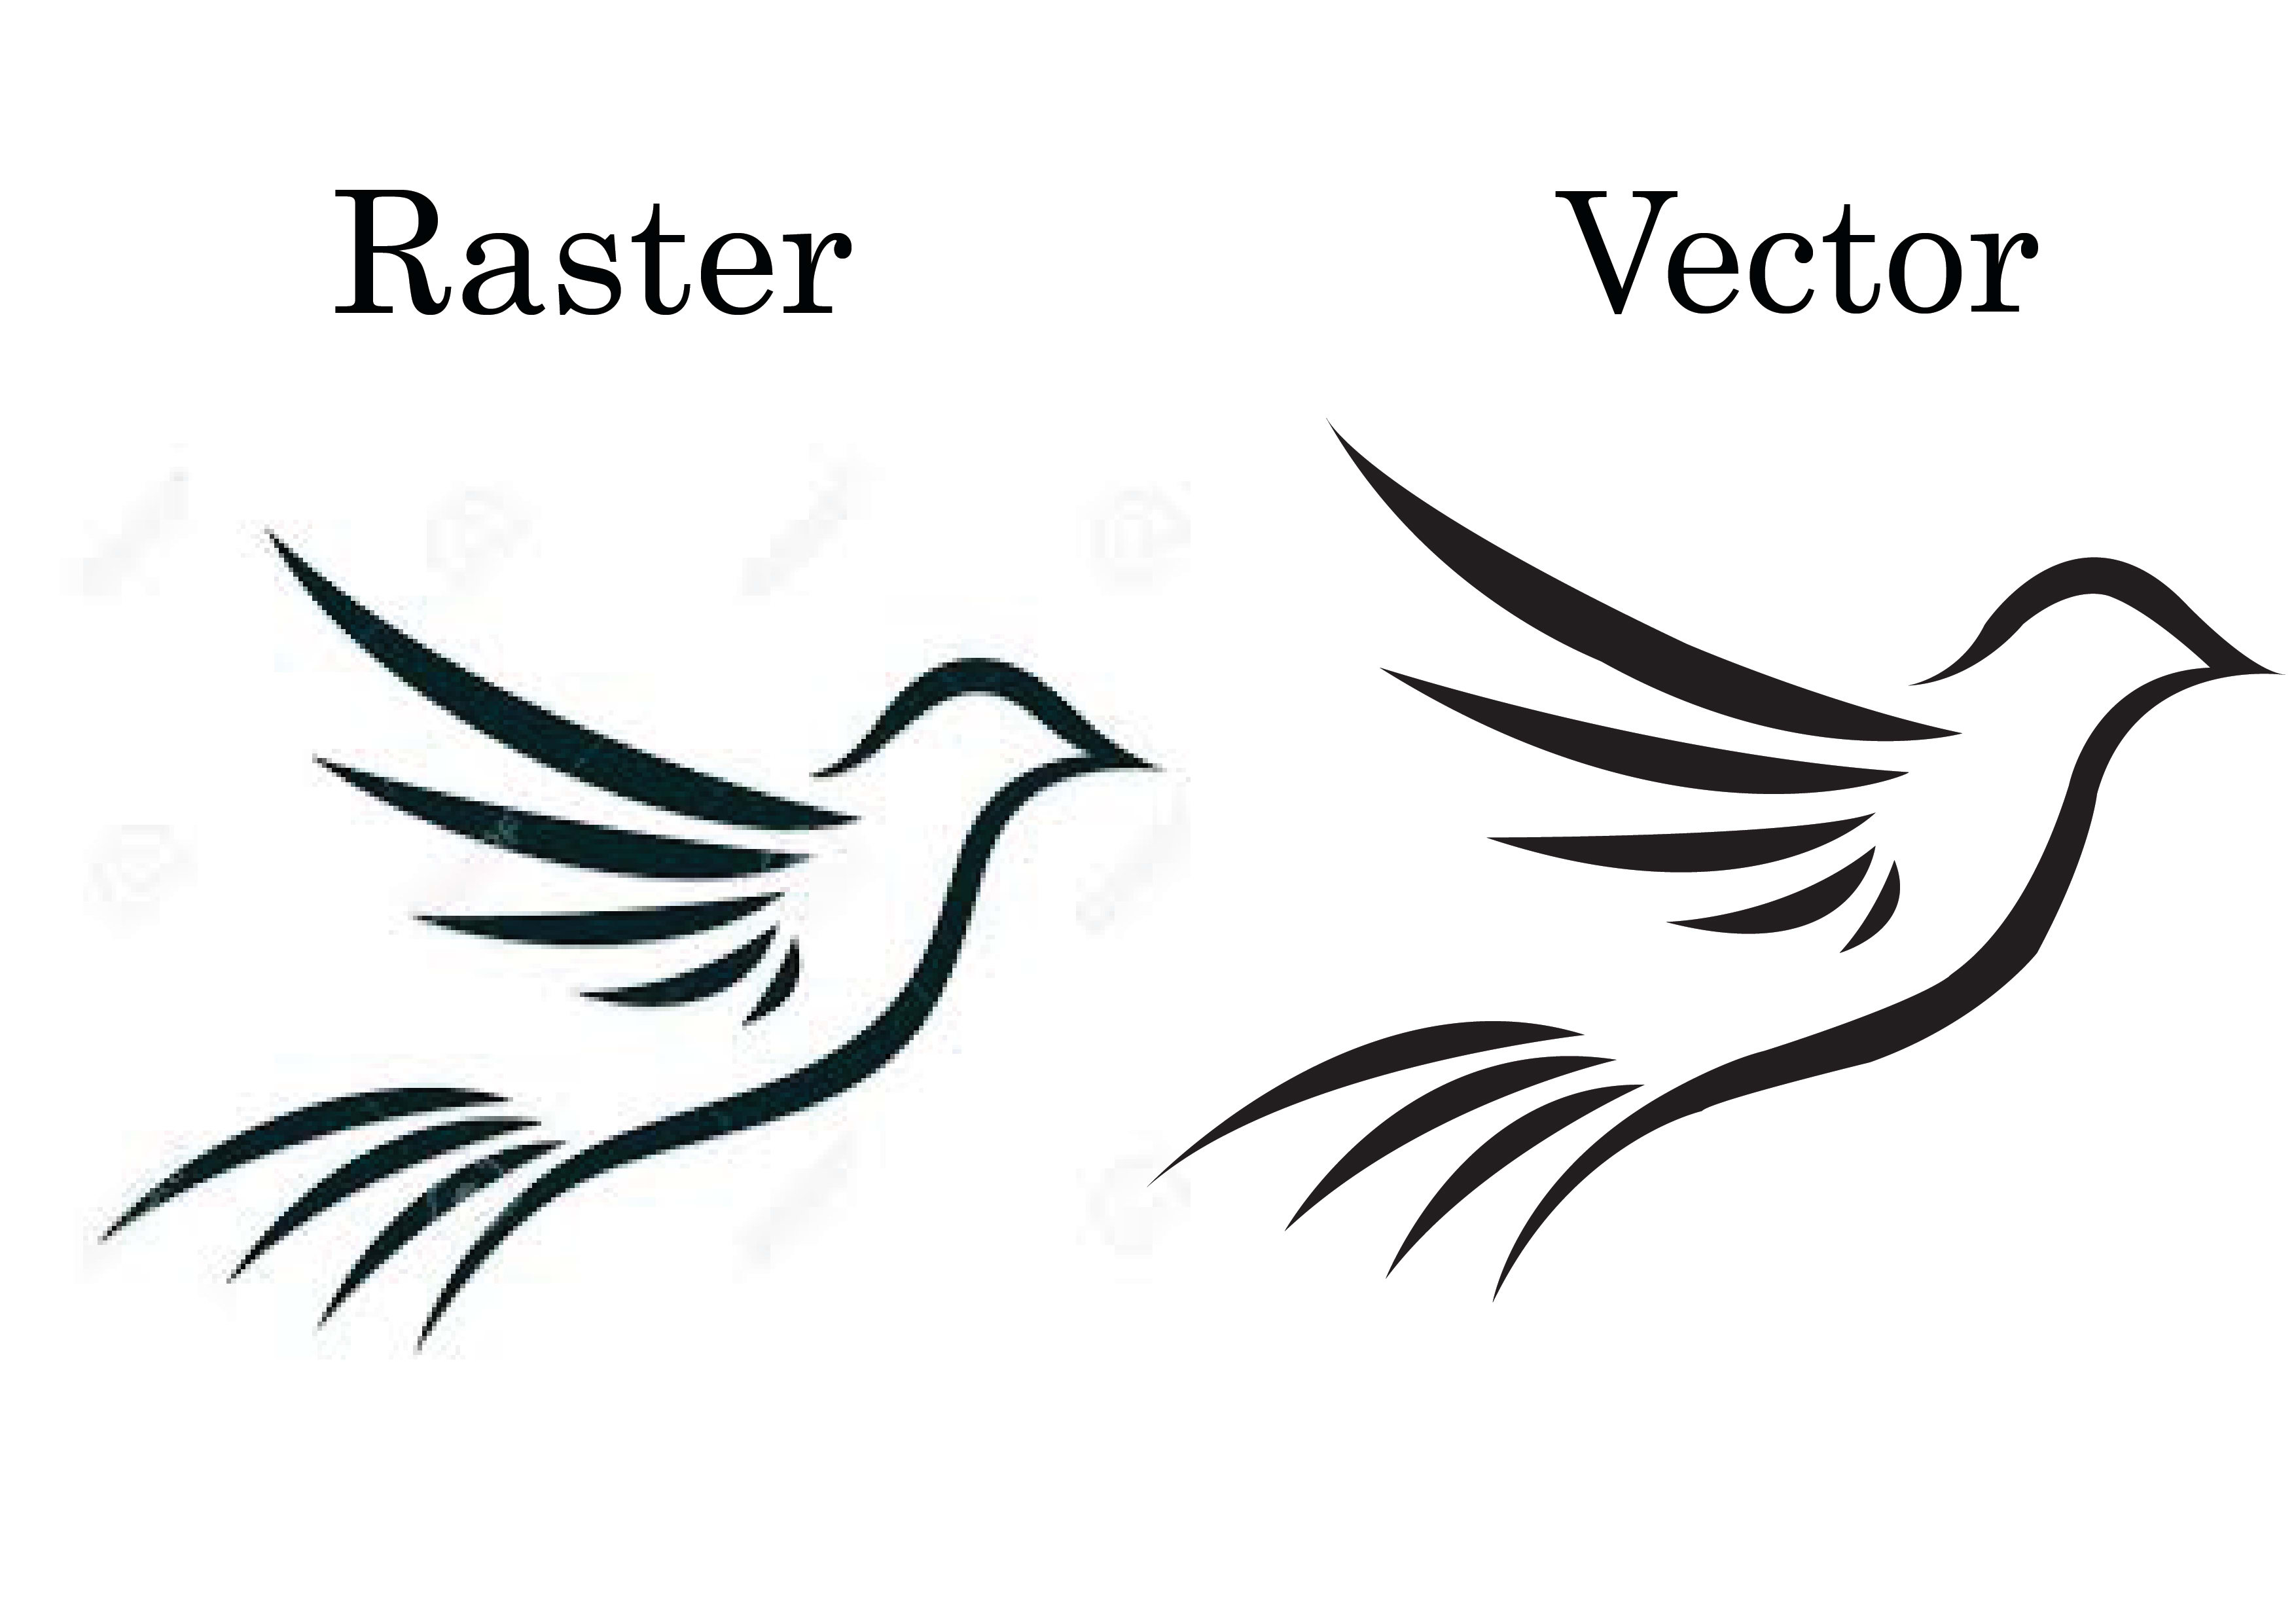 I will do professional vector tracing for raster images and logo